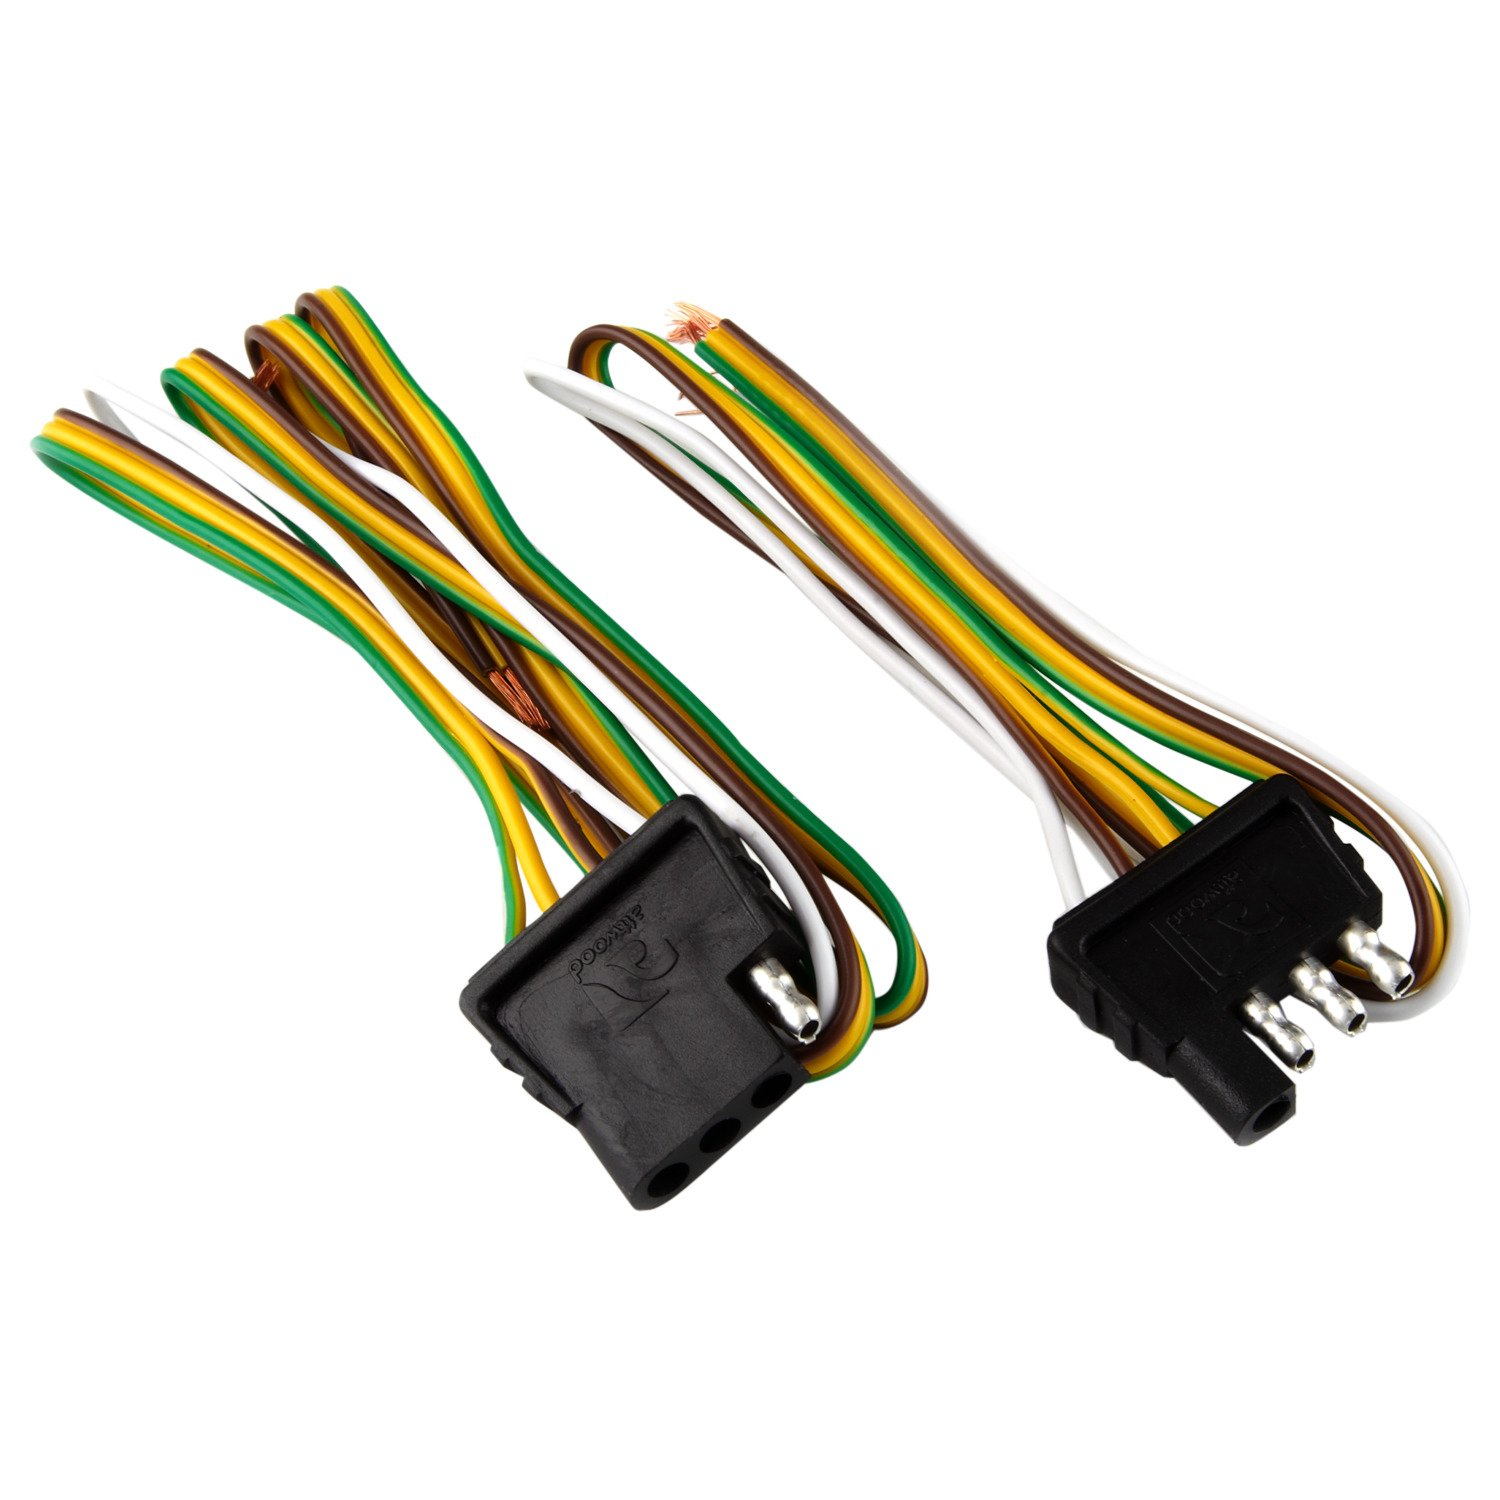 attwood 4 way flat wiring harness kit for vehicles and trailers 4 flat wiring harness [ 1500 x 1500 Pixel ]